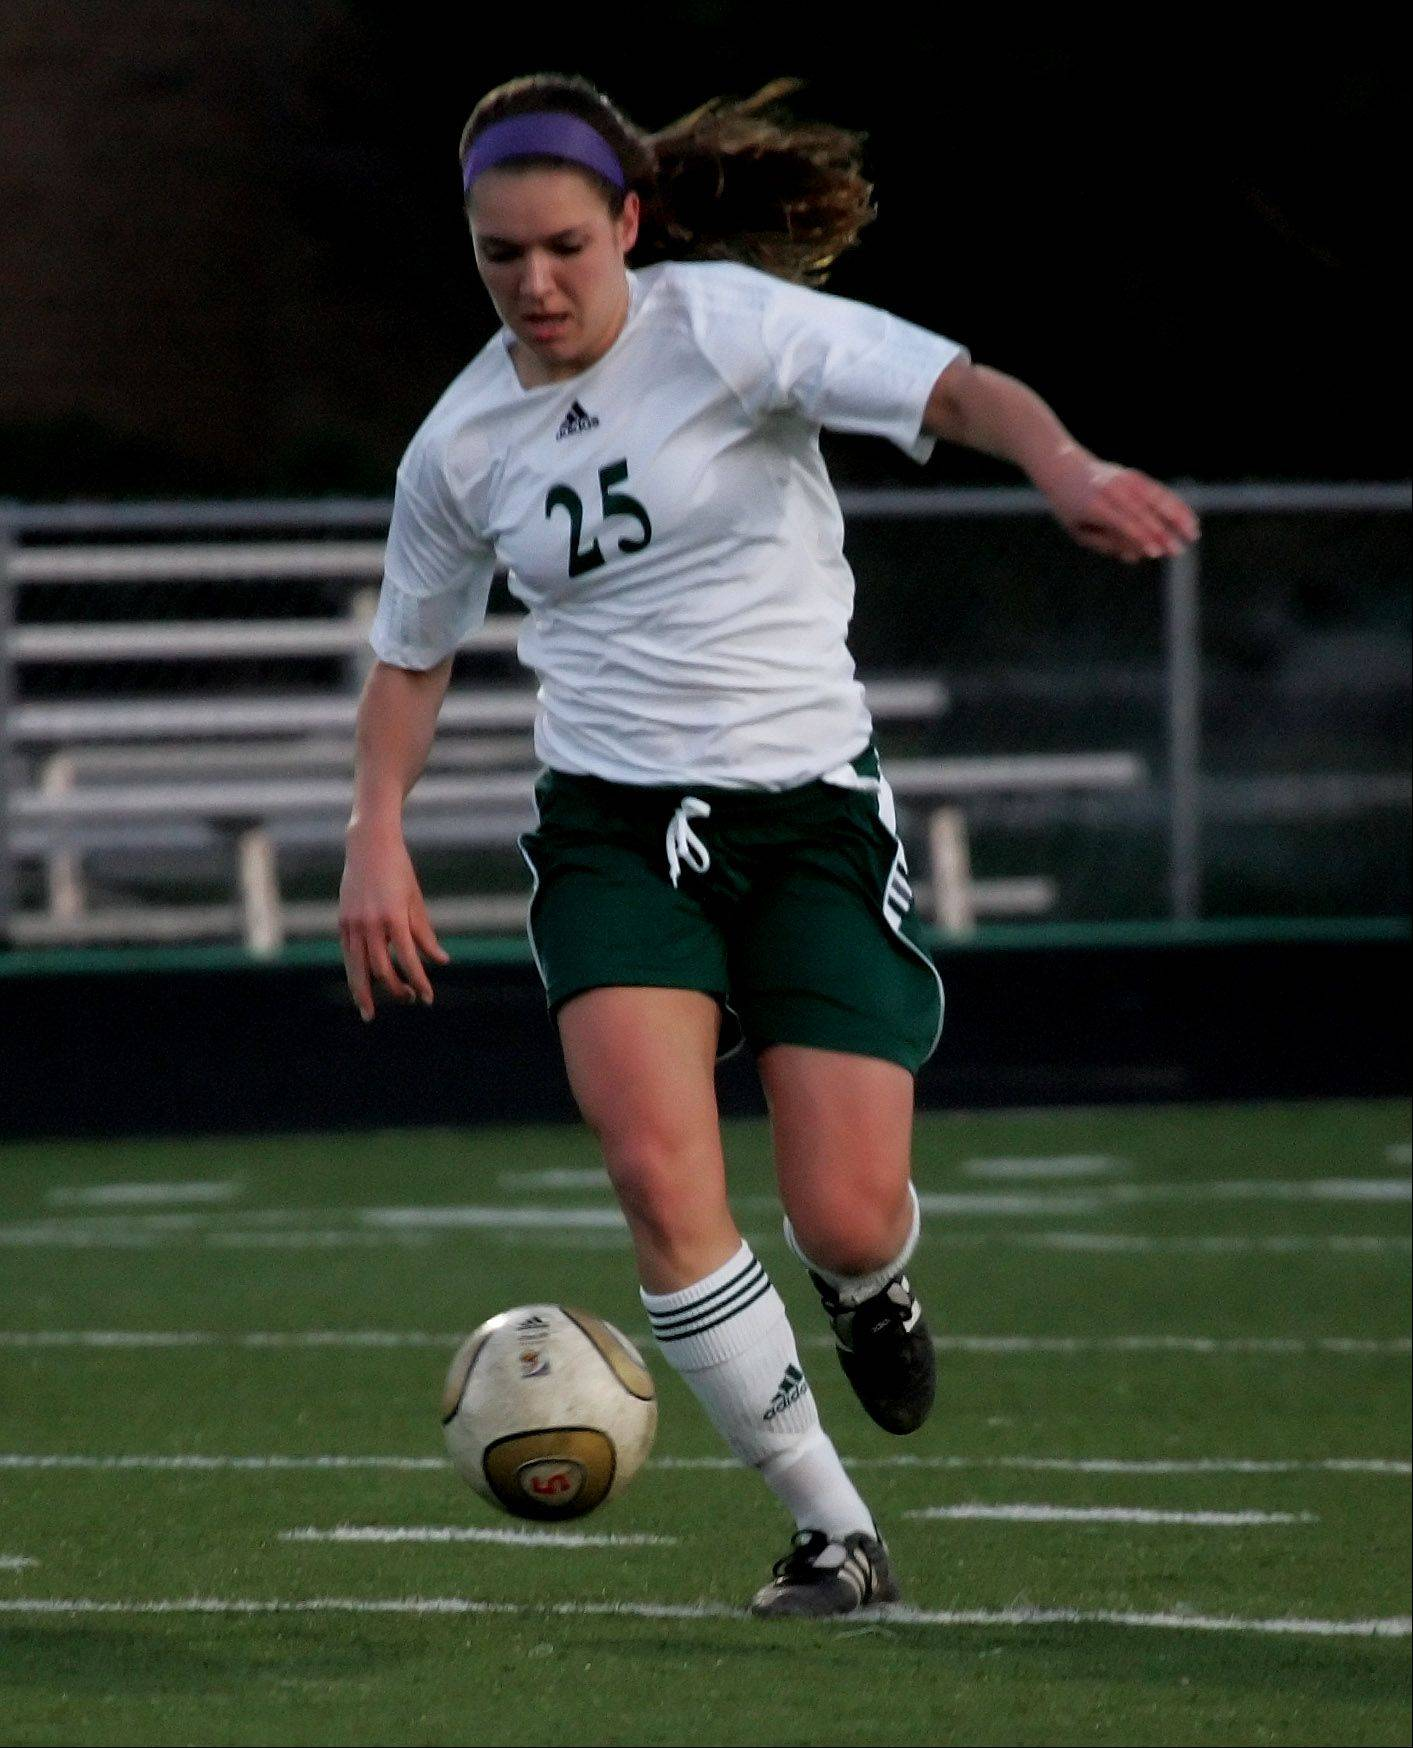 Stevenson forward Katie Krejsa shows a great touch with either foot, which has led to her overall knack for scoring Patriots goals.